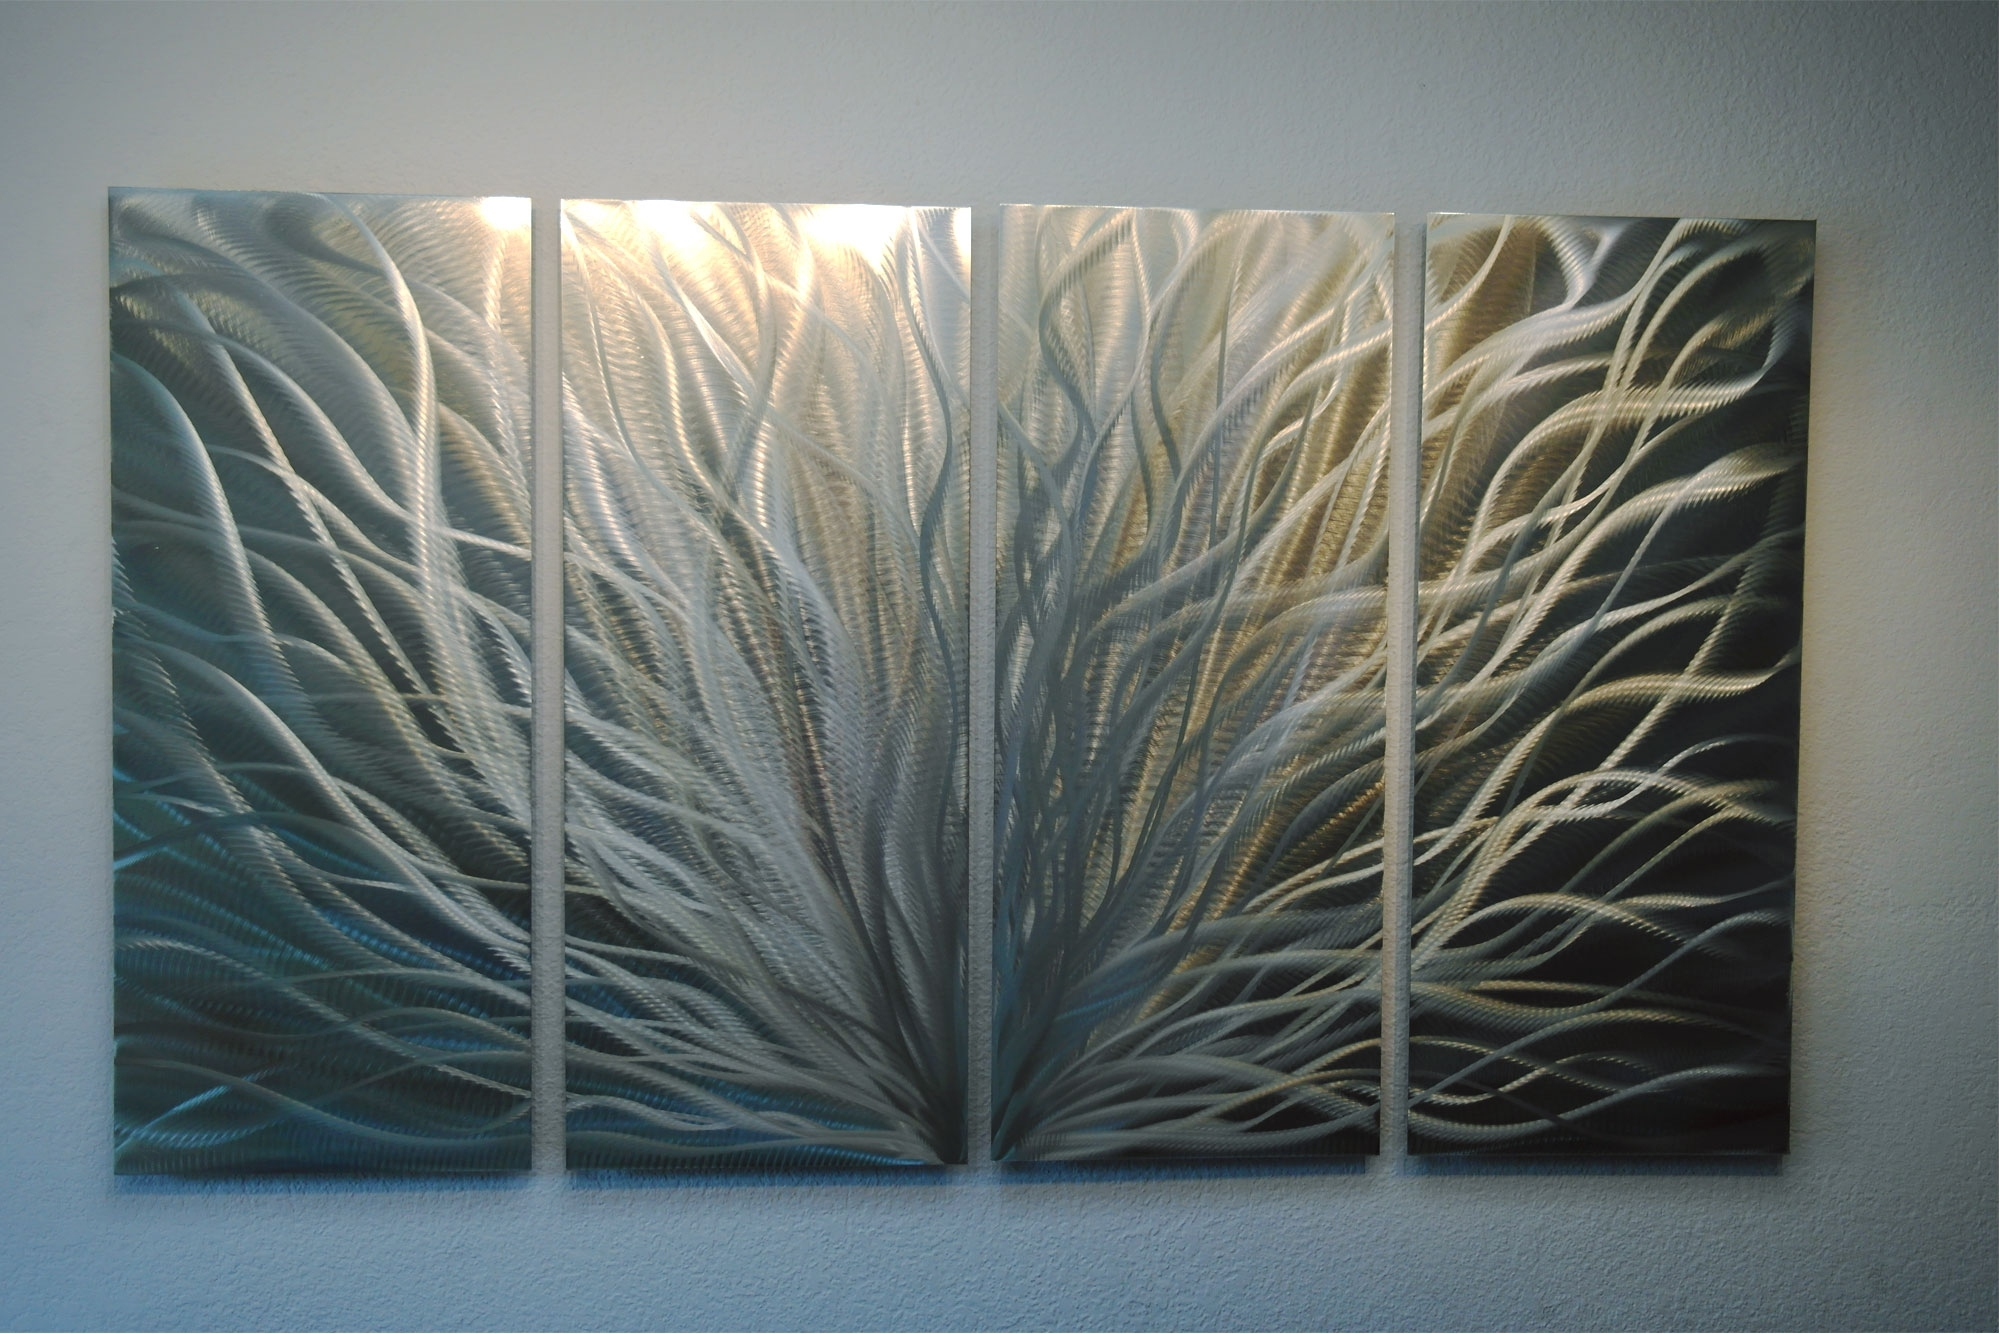 Silver And Gold Wall Art Regarding 2018 Radiance Silver And Gold 36X63 – Abstract Metal Wall Art (View 9 of 15)